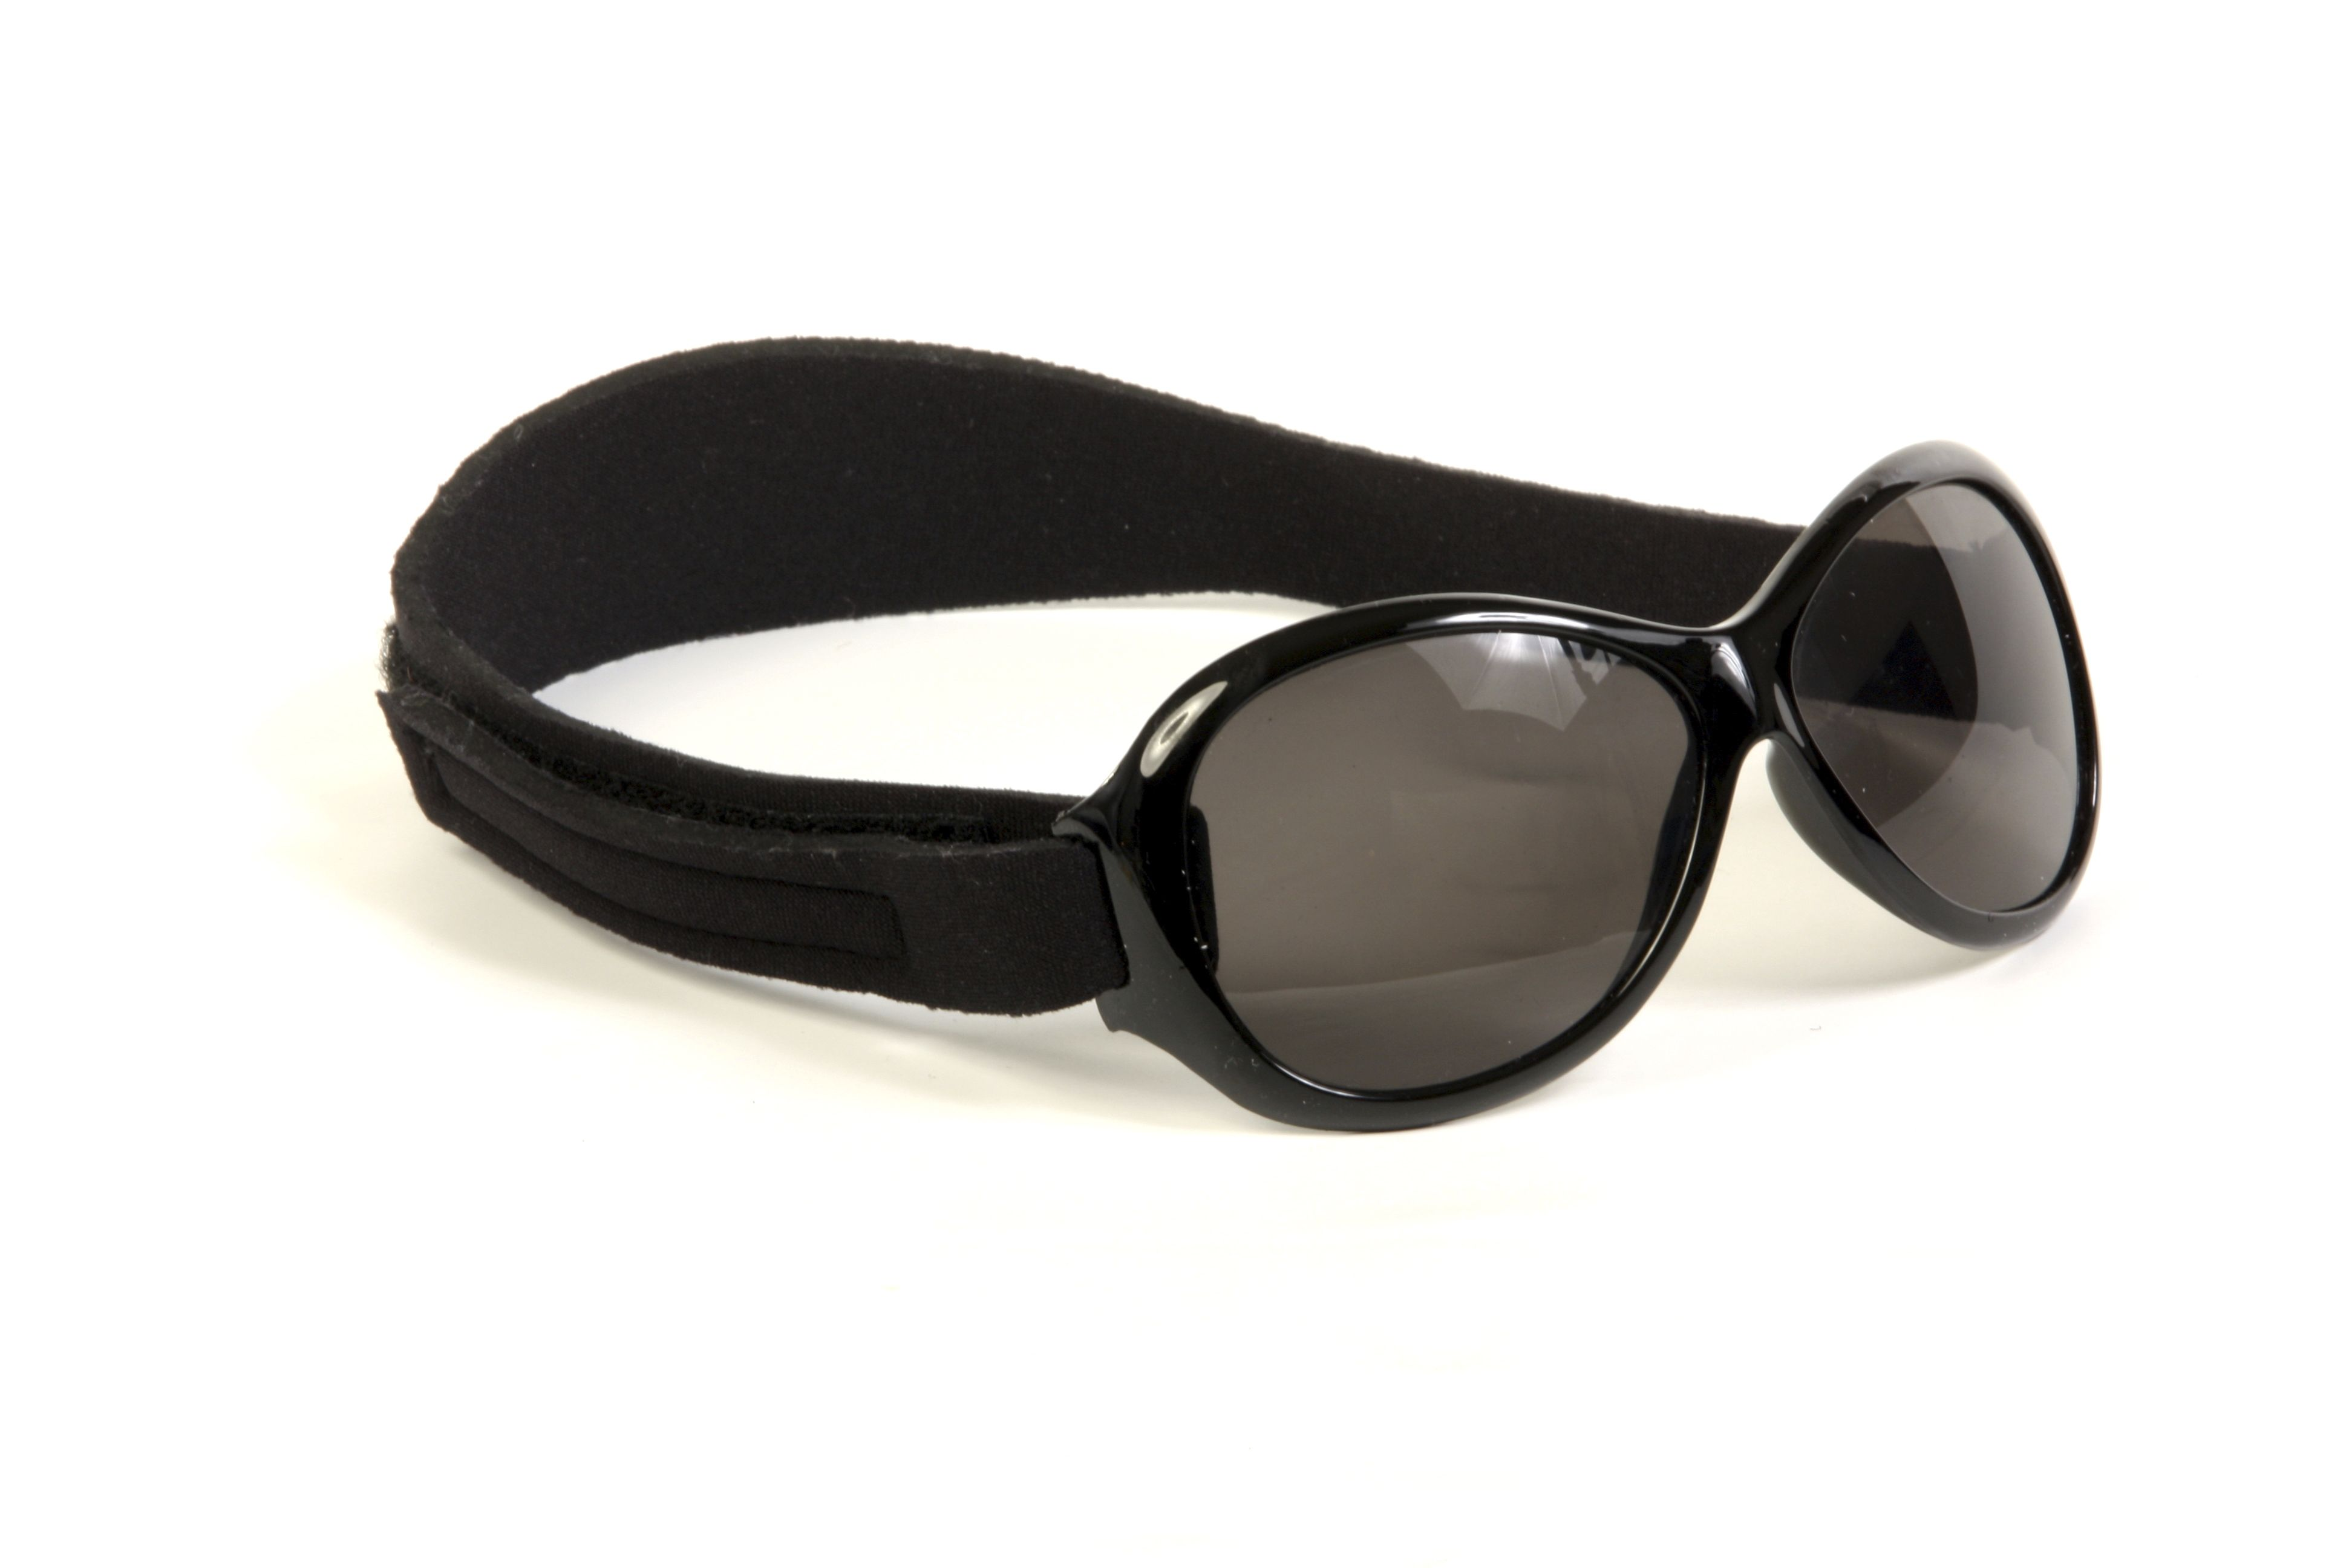 af8f0a2318c Retro Banz Black. Available in sizes 0-2 years and 2 - 5 years ...